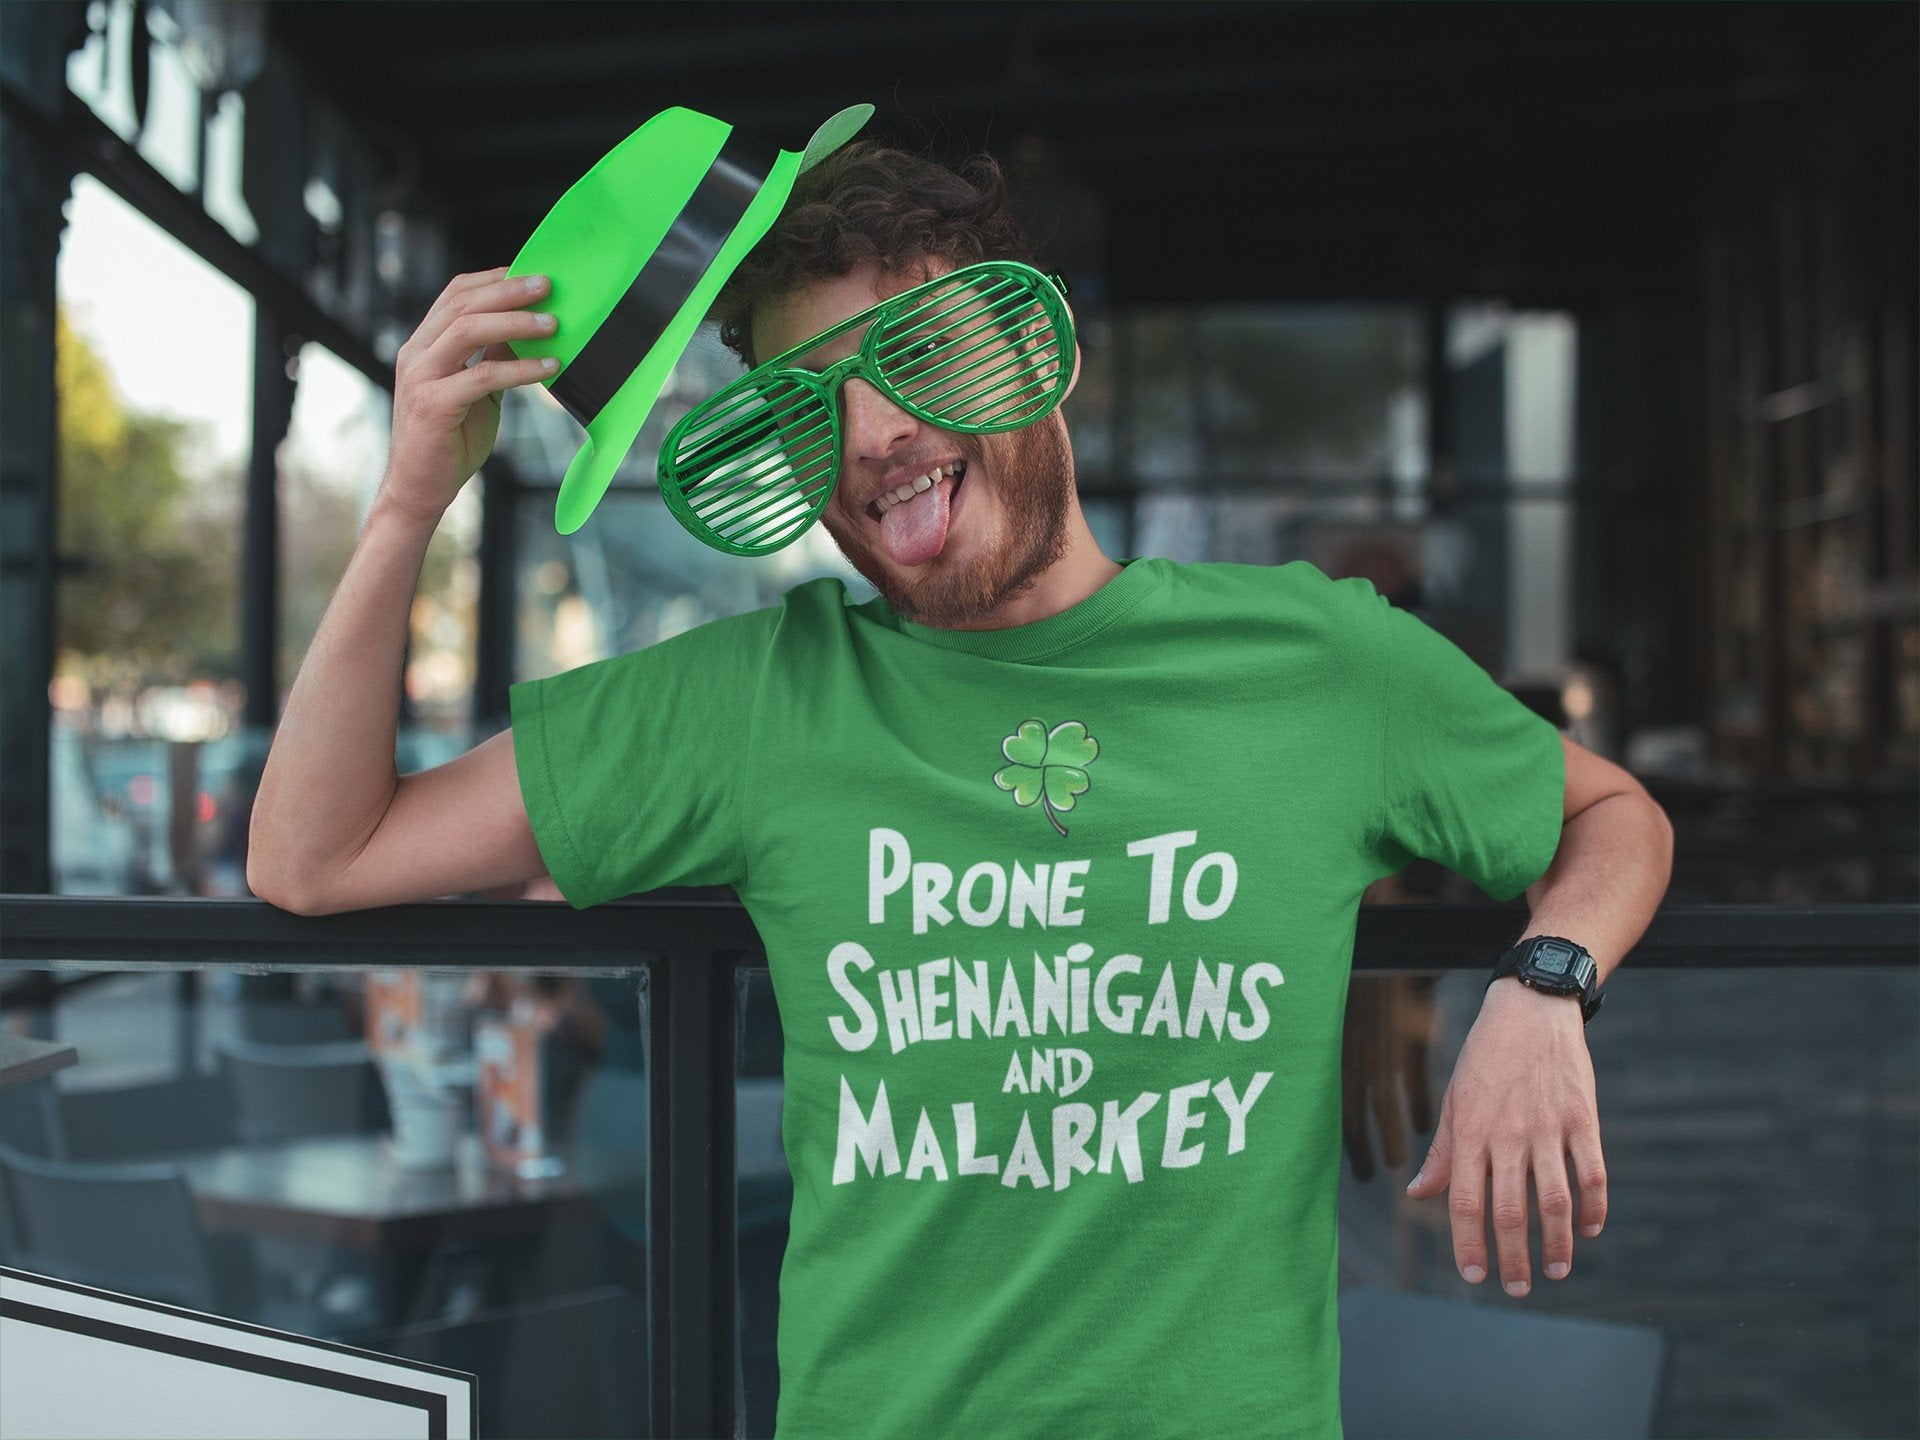 Prone To Shenanigans And Malarkey Funny St Patrick's Day Irish T-shirt - Snappy Creations